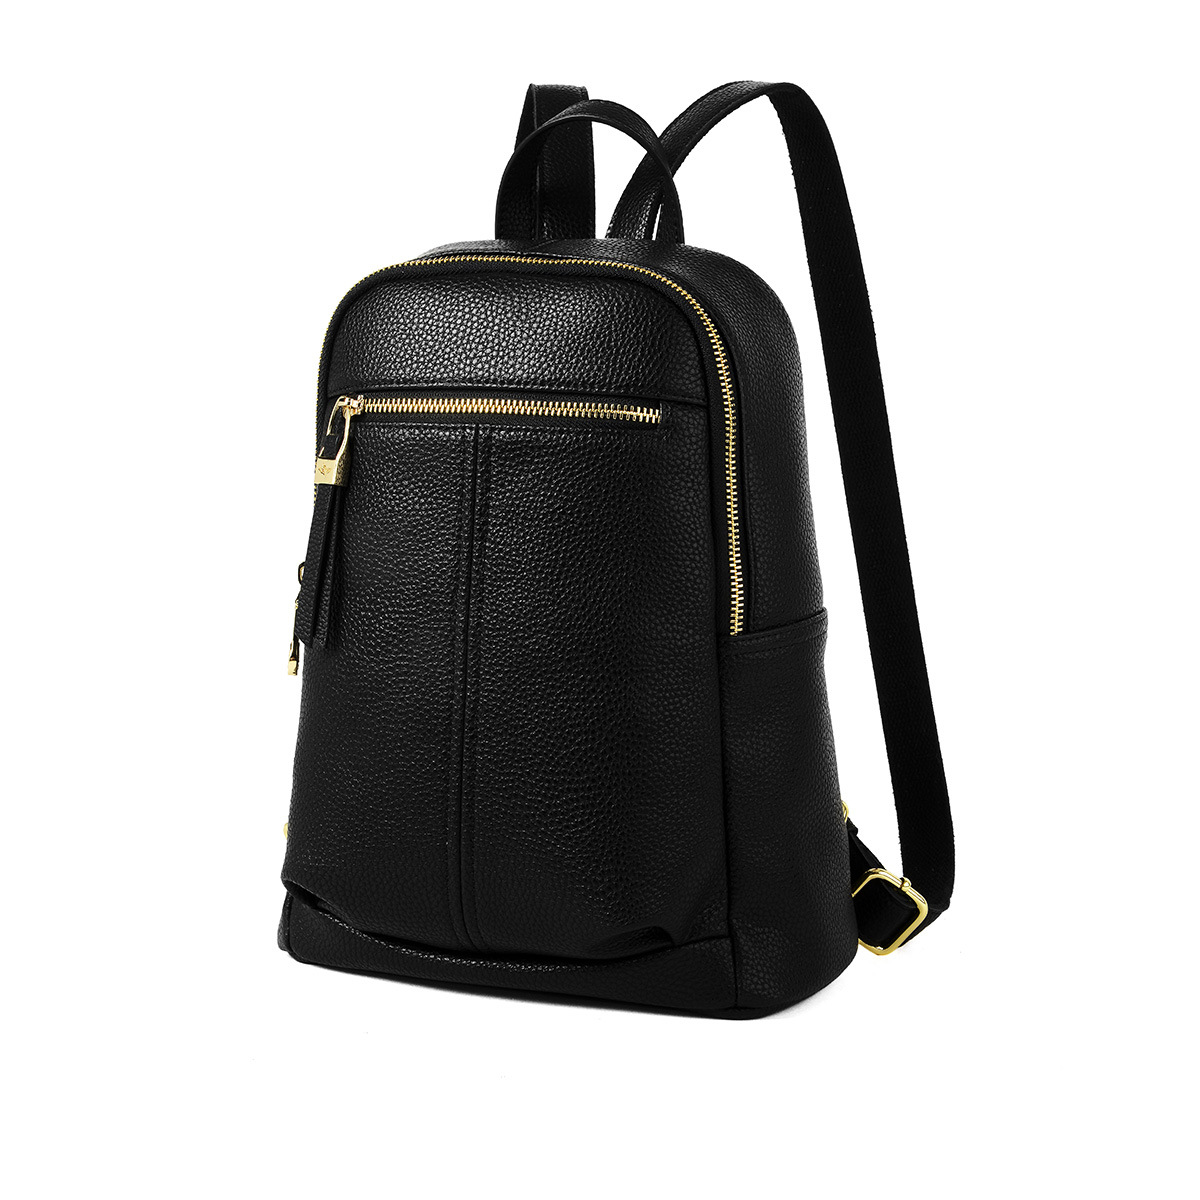 Leather backpack 2018 new lightweight, simple, practical, mens and womens general-purpose backpack for both men and women.Leather backpack 2018 new lightweight, simple, practical, mens and womens general-purpose backpack for both men and women.